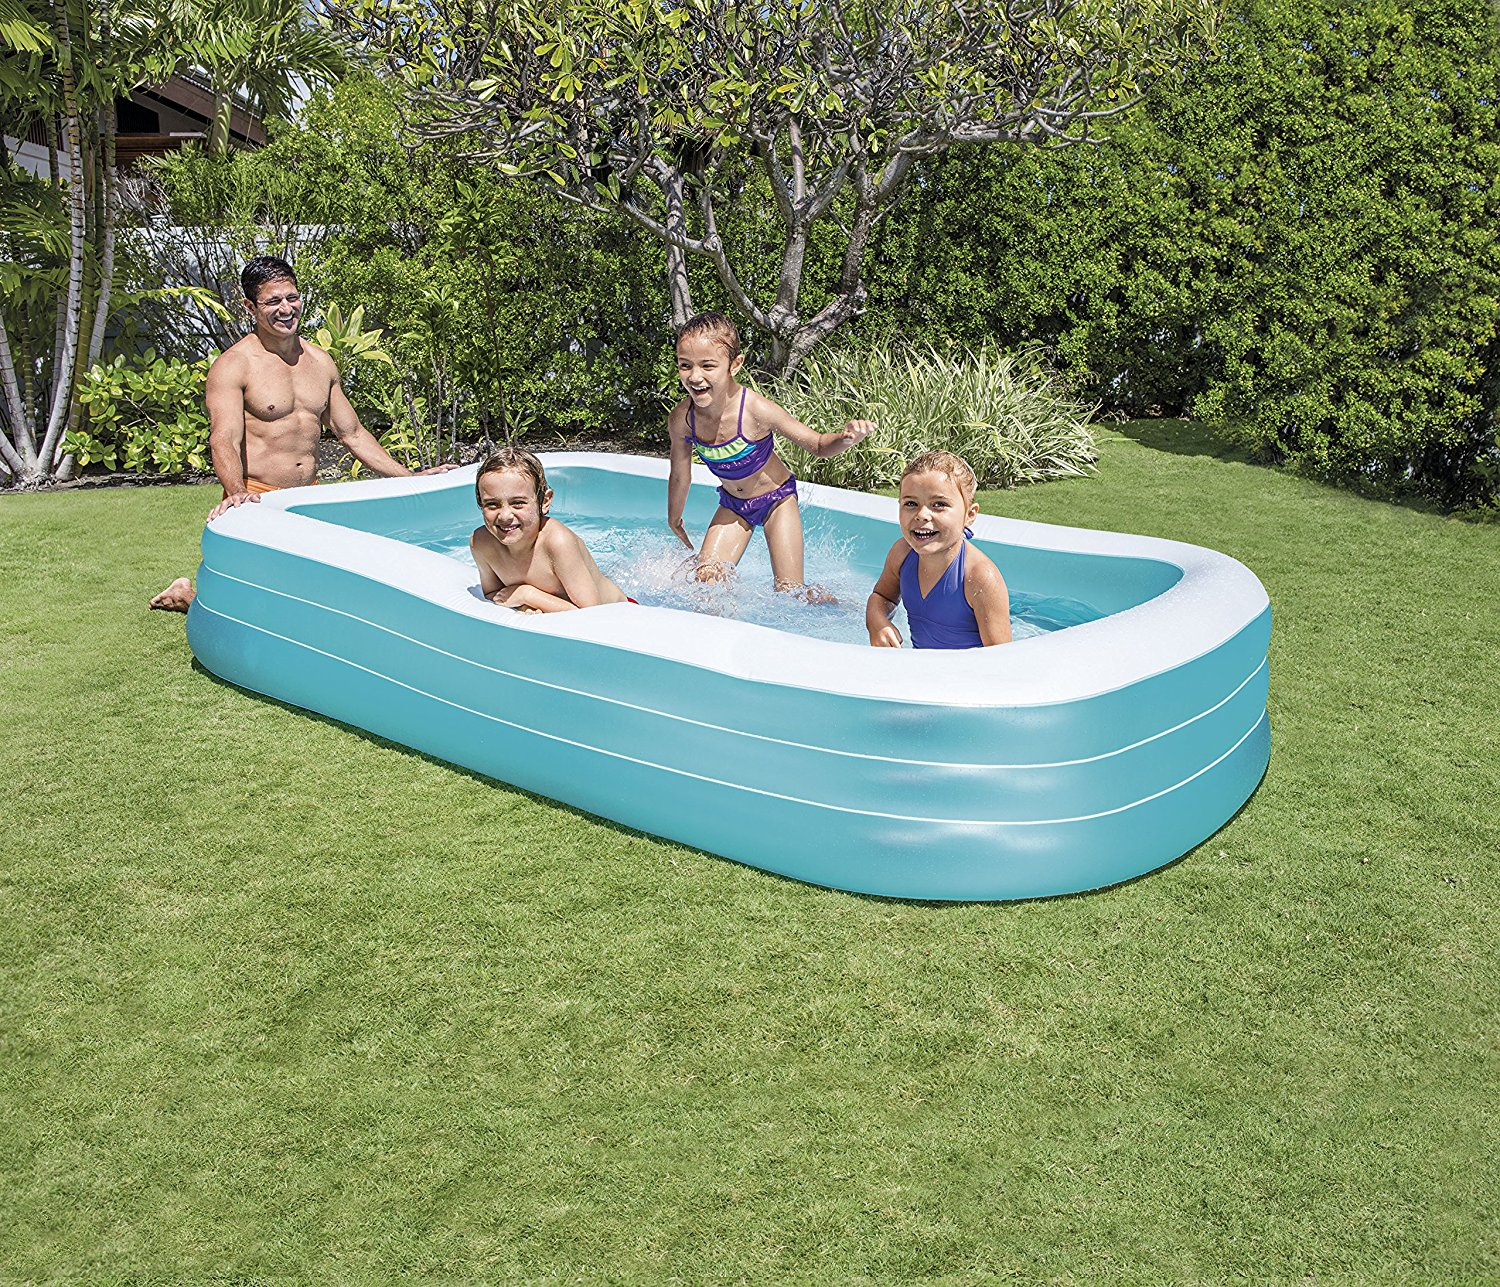 Piscina gonfiabile rettangolare intex 58484 305 x 183 x 56 cm for Alberca intex